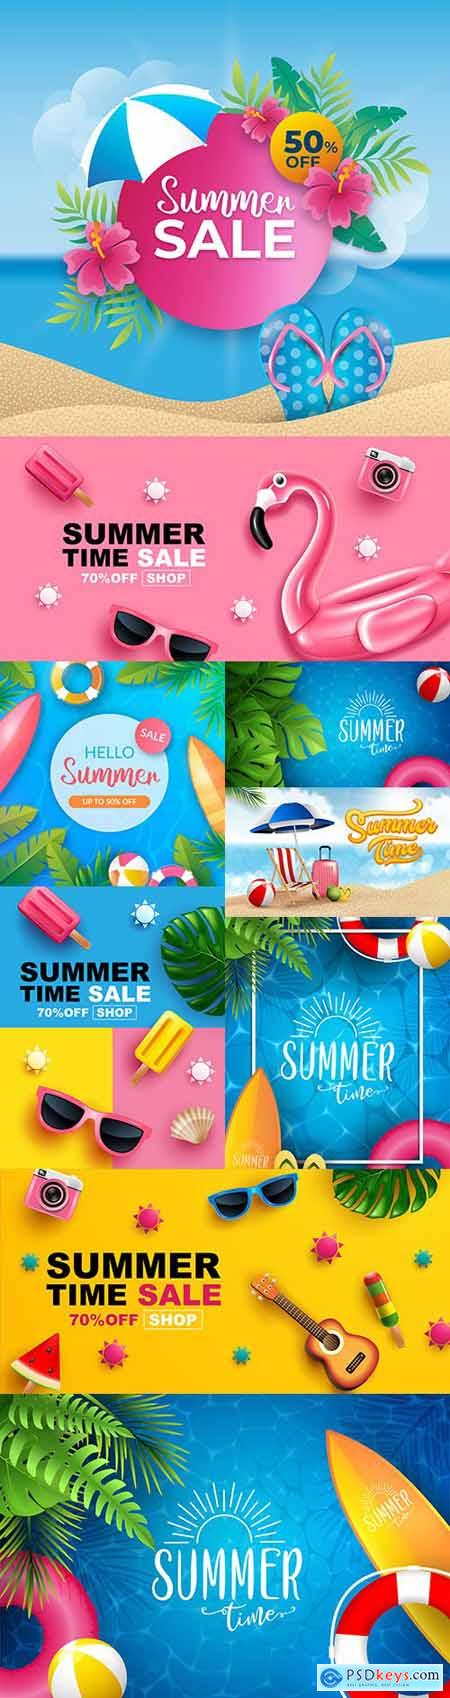 Summer sale banner layout design illustrations